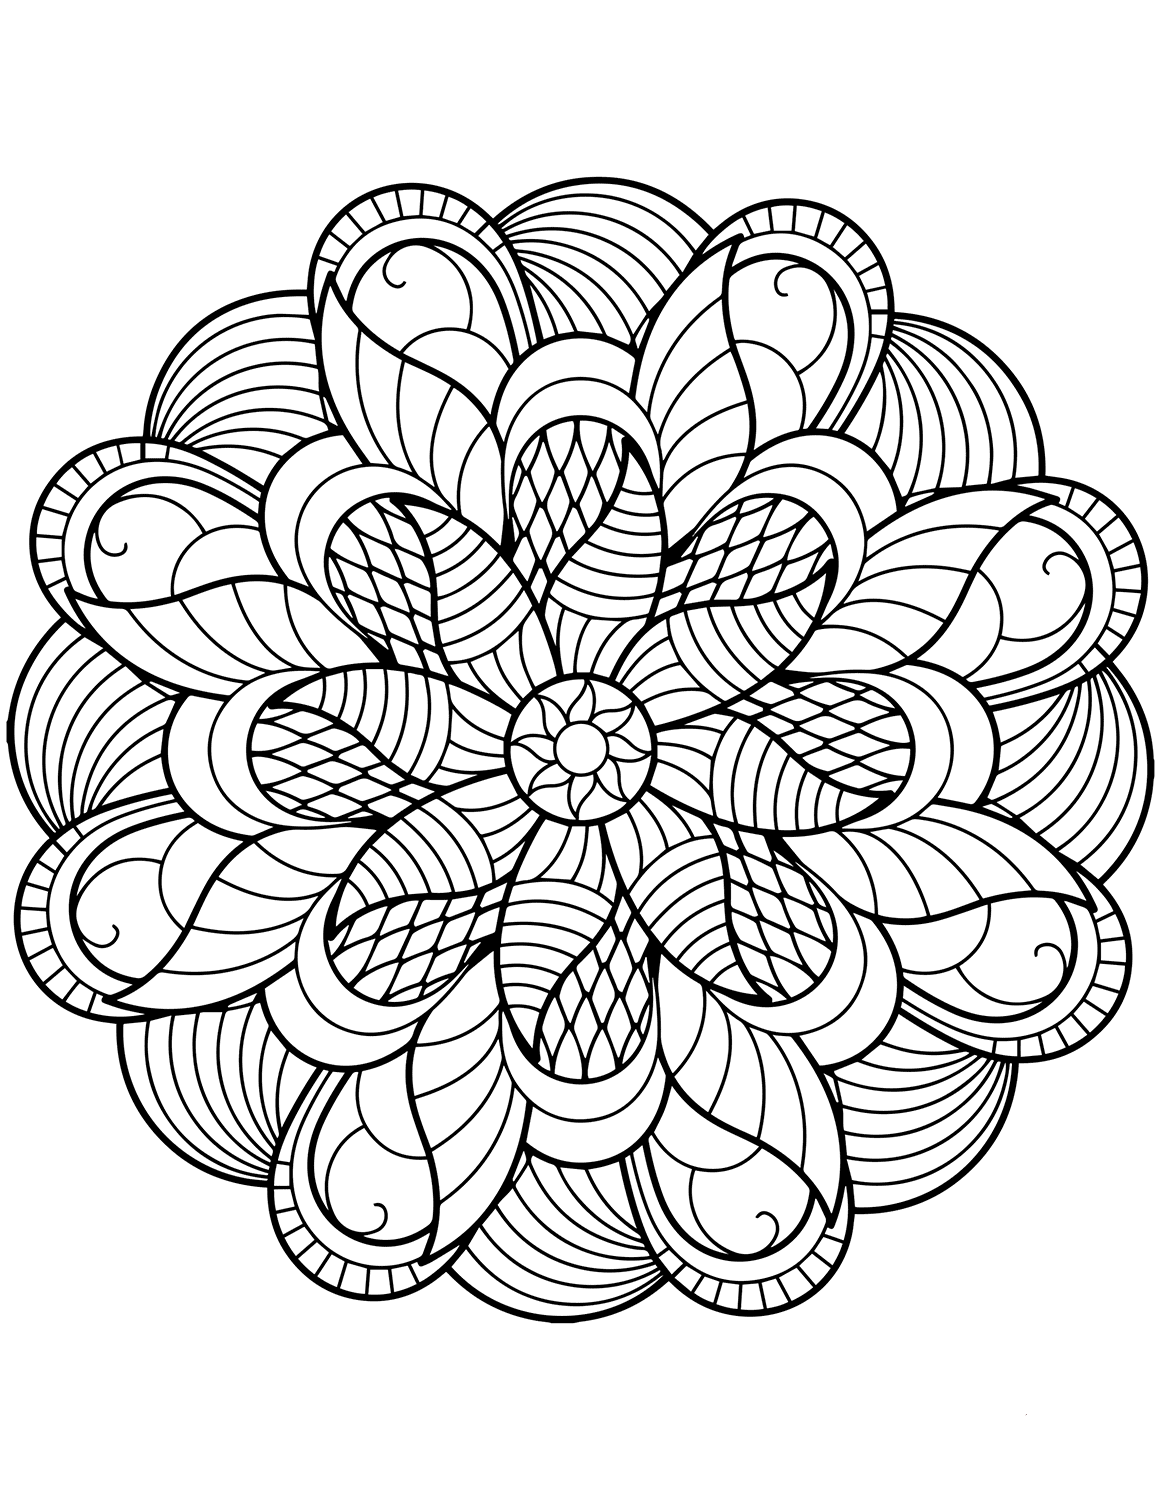 mandala coloring pages for adults flower mandala coloring pages best coloring pages for kids mandala pages adults coloring for